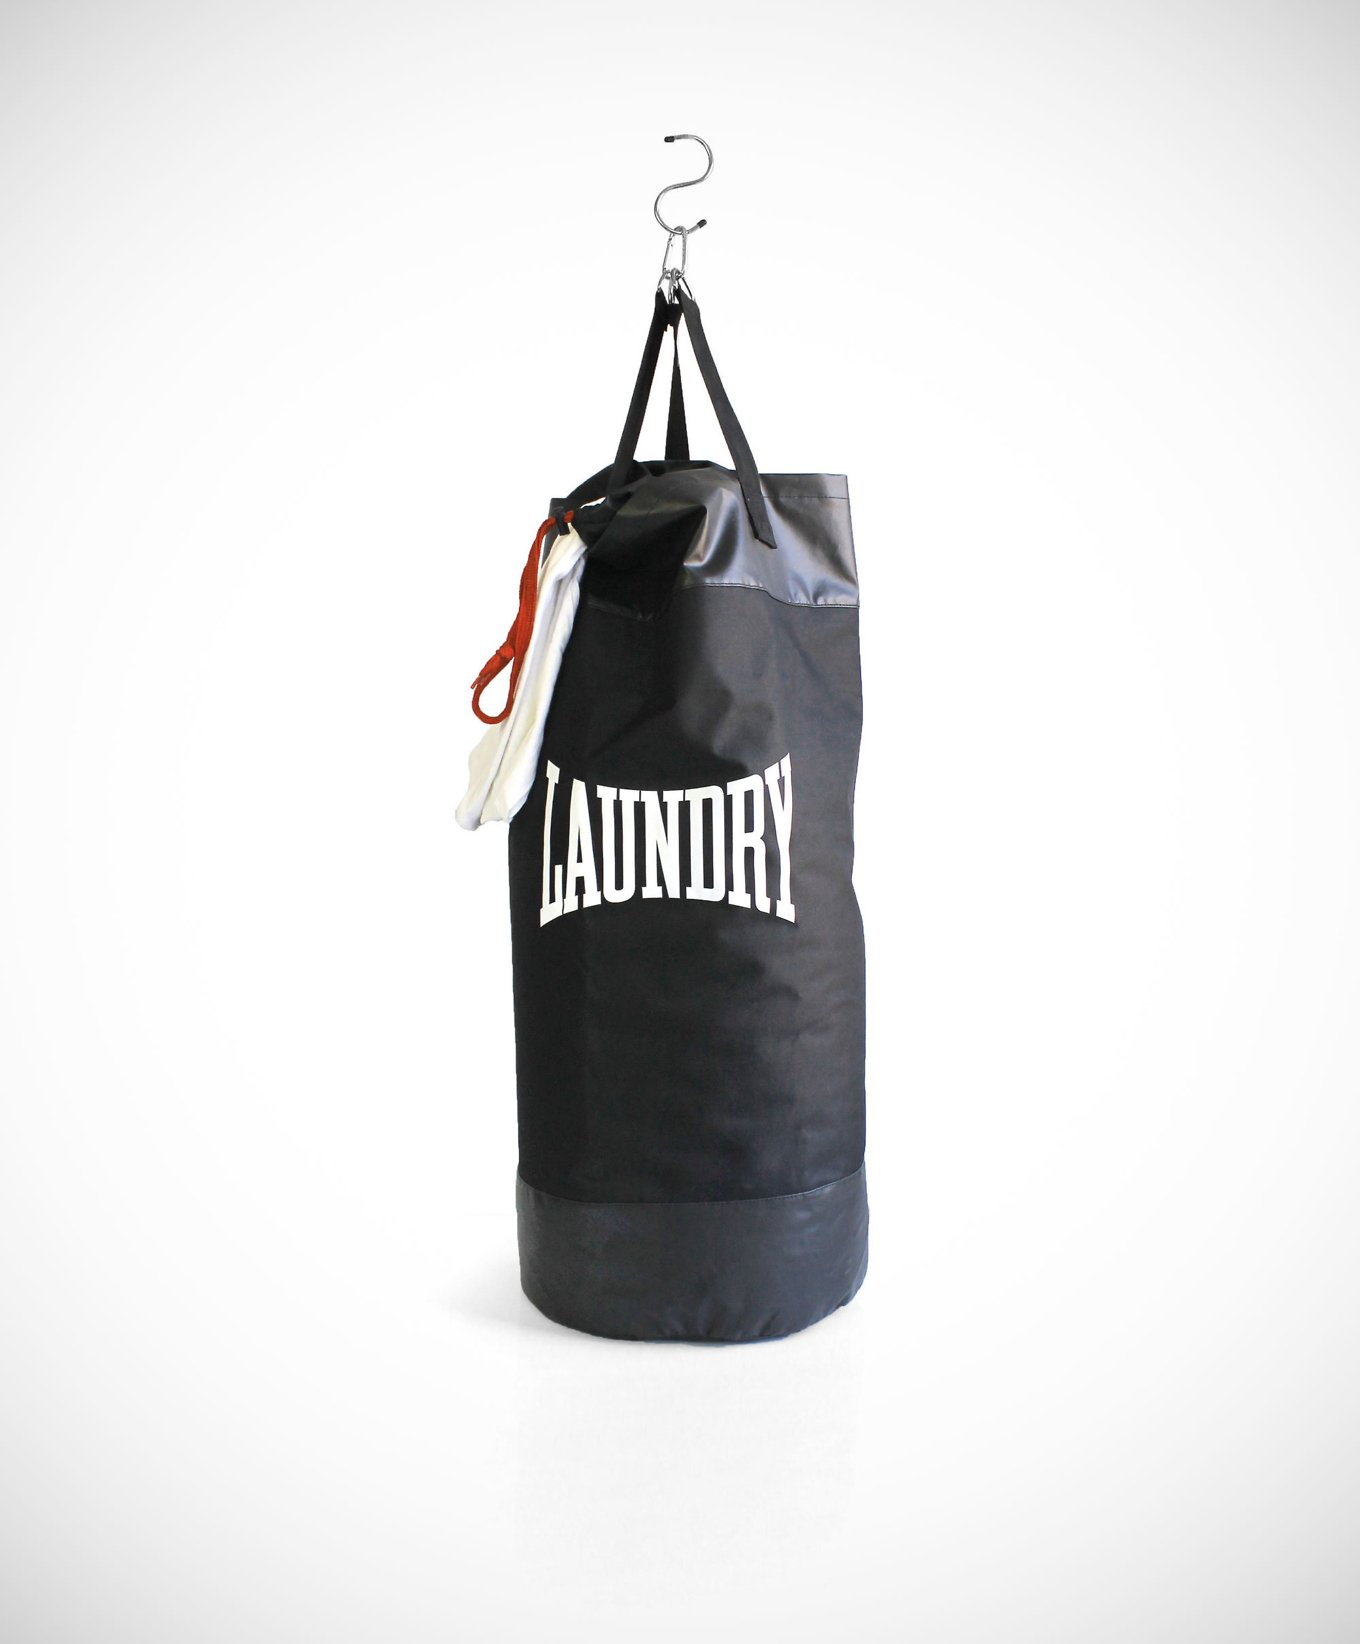 Where Can I Buy Laundry Bags Laundry Punch Bag By Jason Lempieri